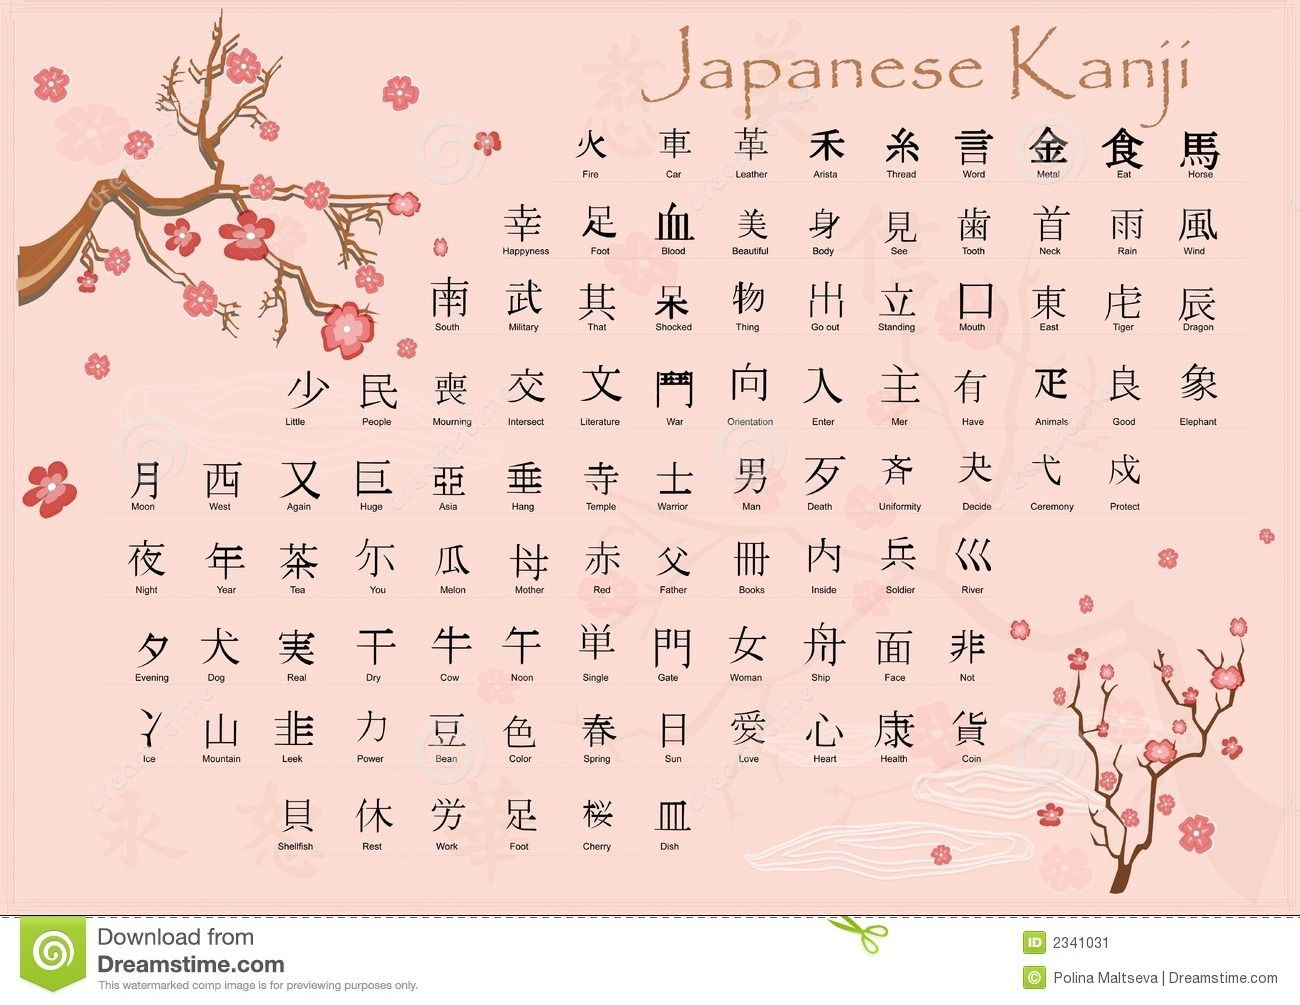 japanese kanji with meanings